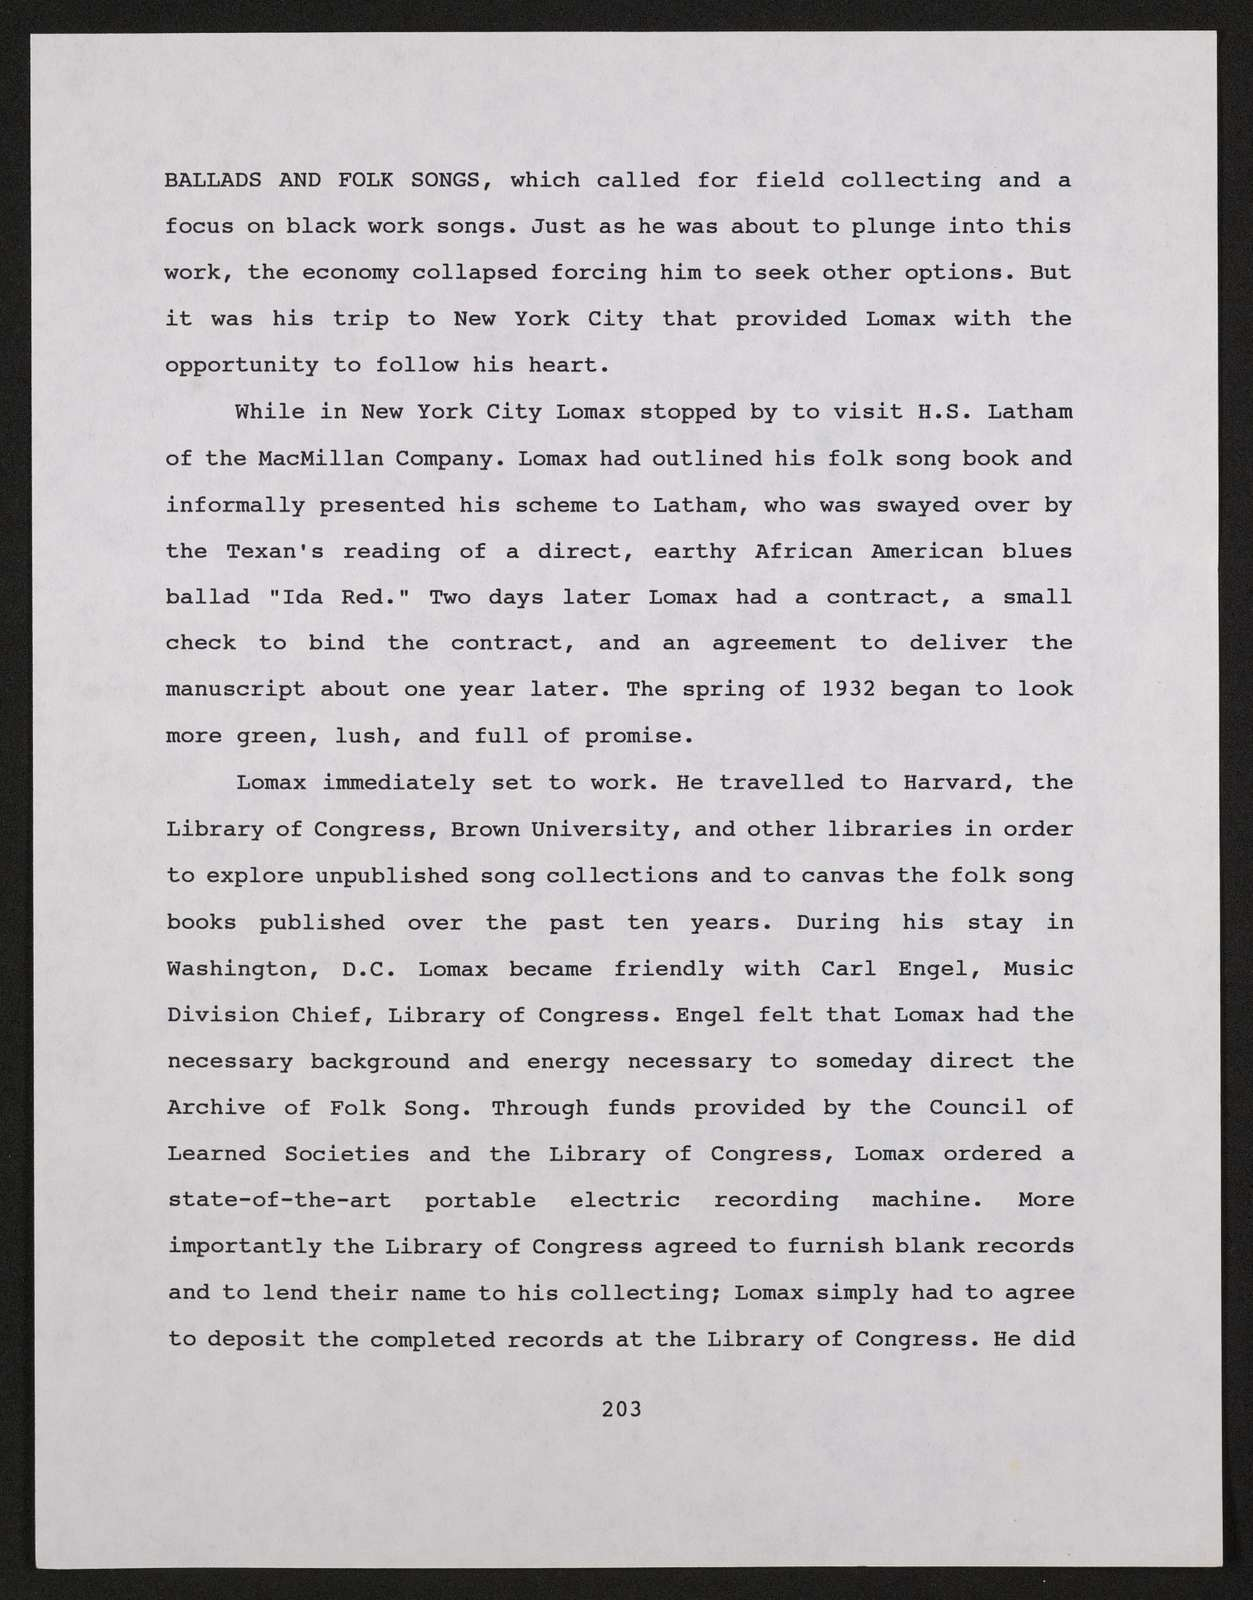 Alan Lomax Collection, Manuscripts, The Life and Legend of Leadbelly, 1992